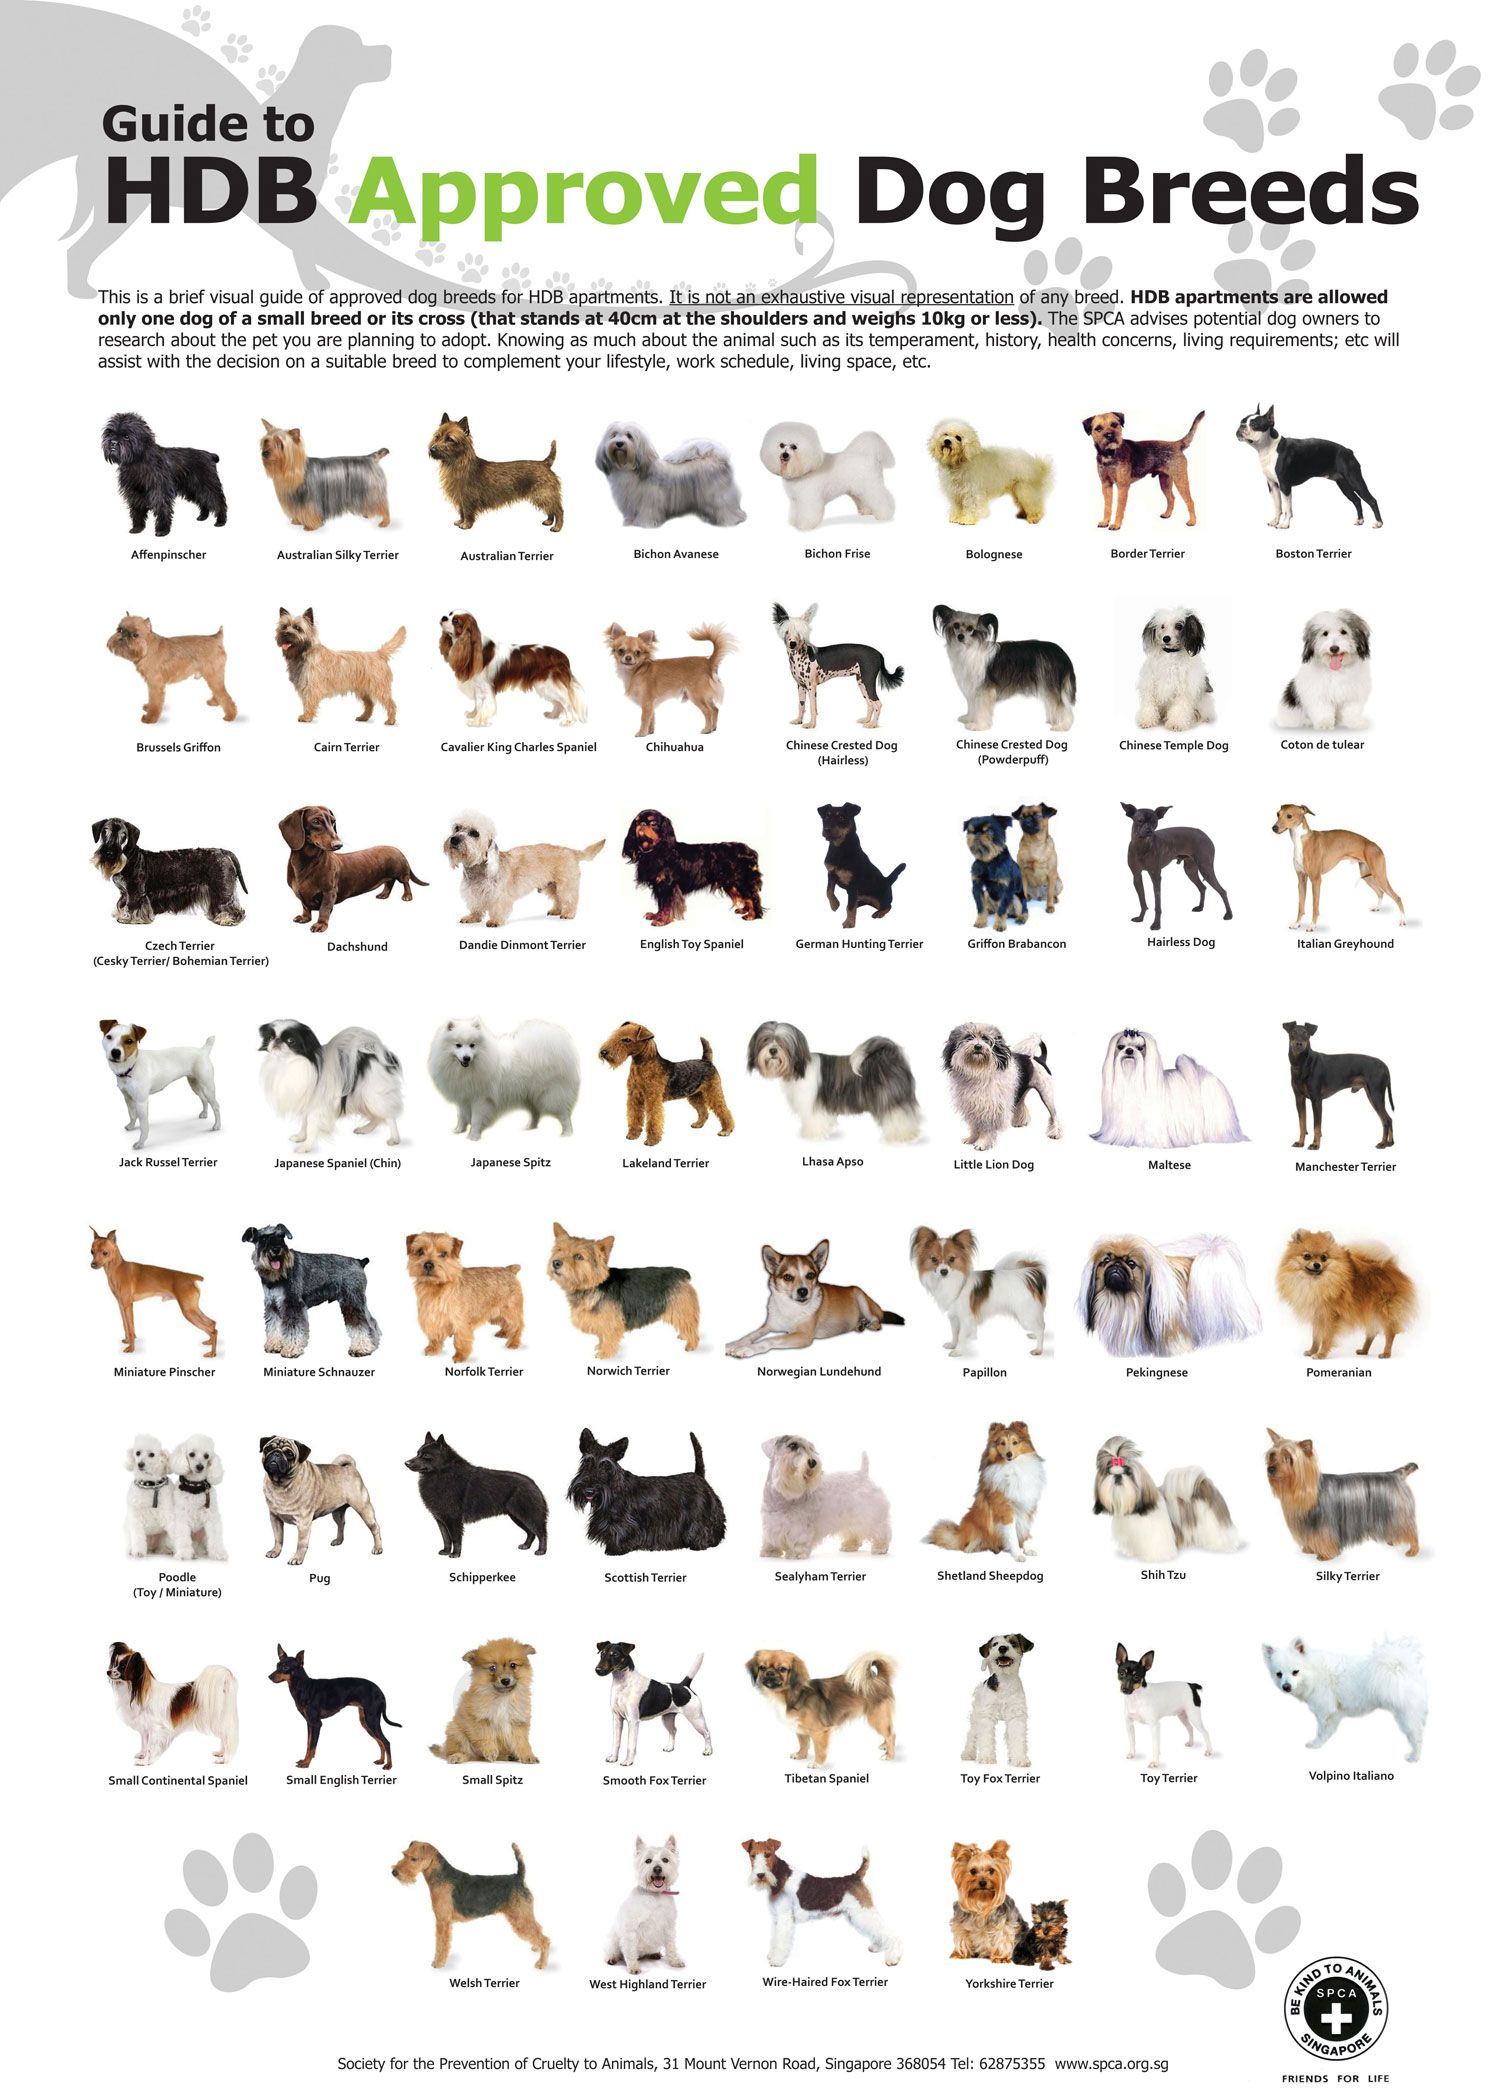 Guide To HDB Approved Dog Breeds In Singapore Dog breeds